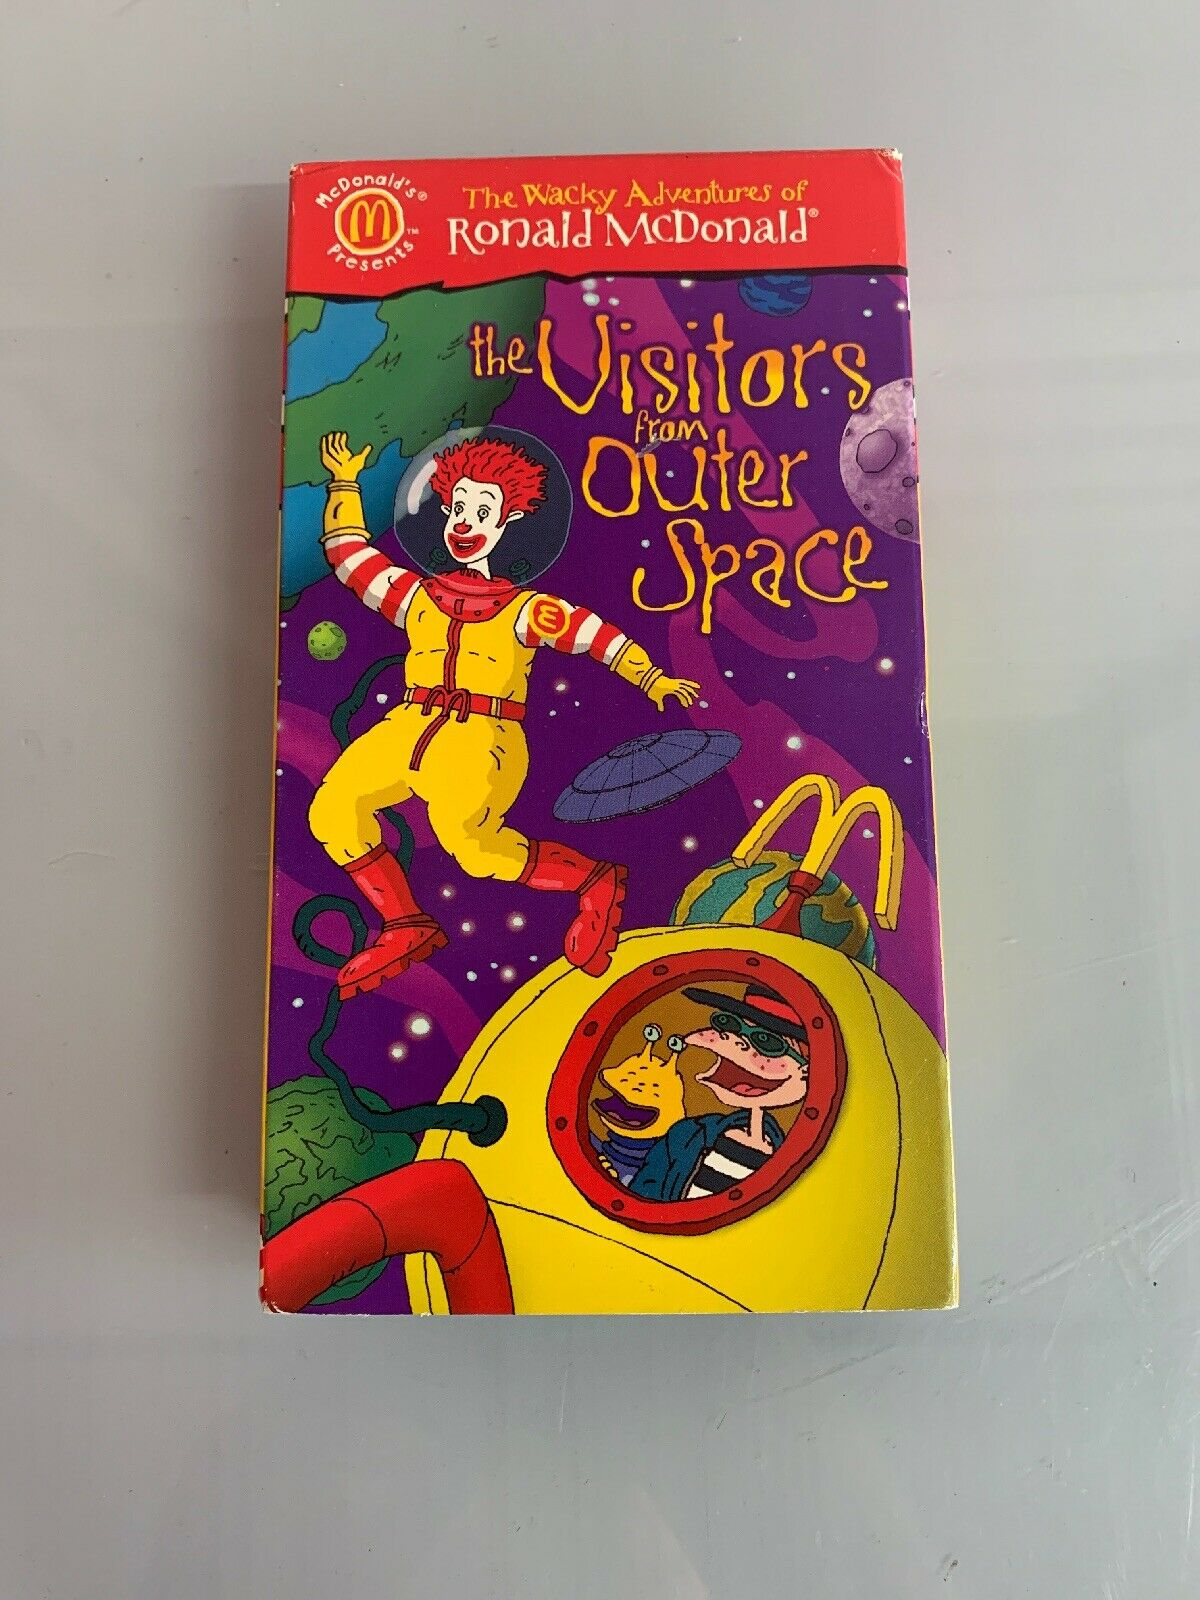 The Wacky Adventures of Ronald McDonald: The Visitors From Outer Space (1999 VHS)